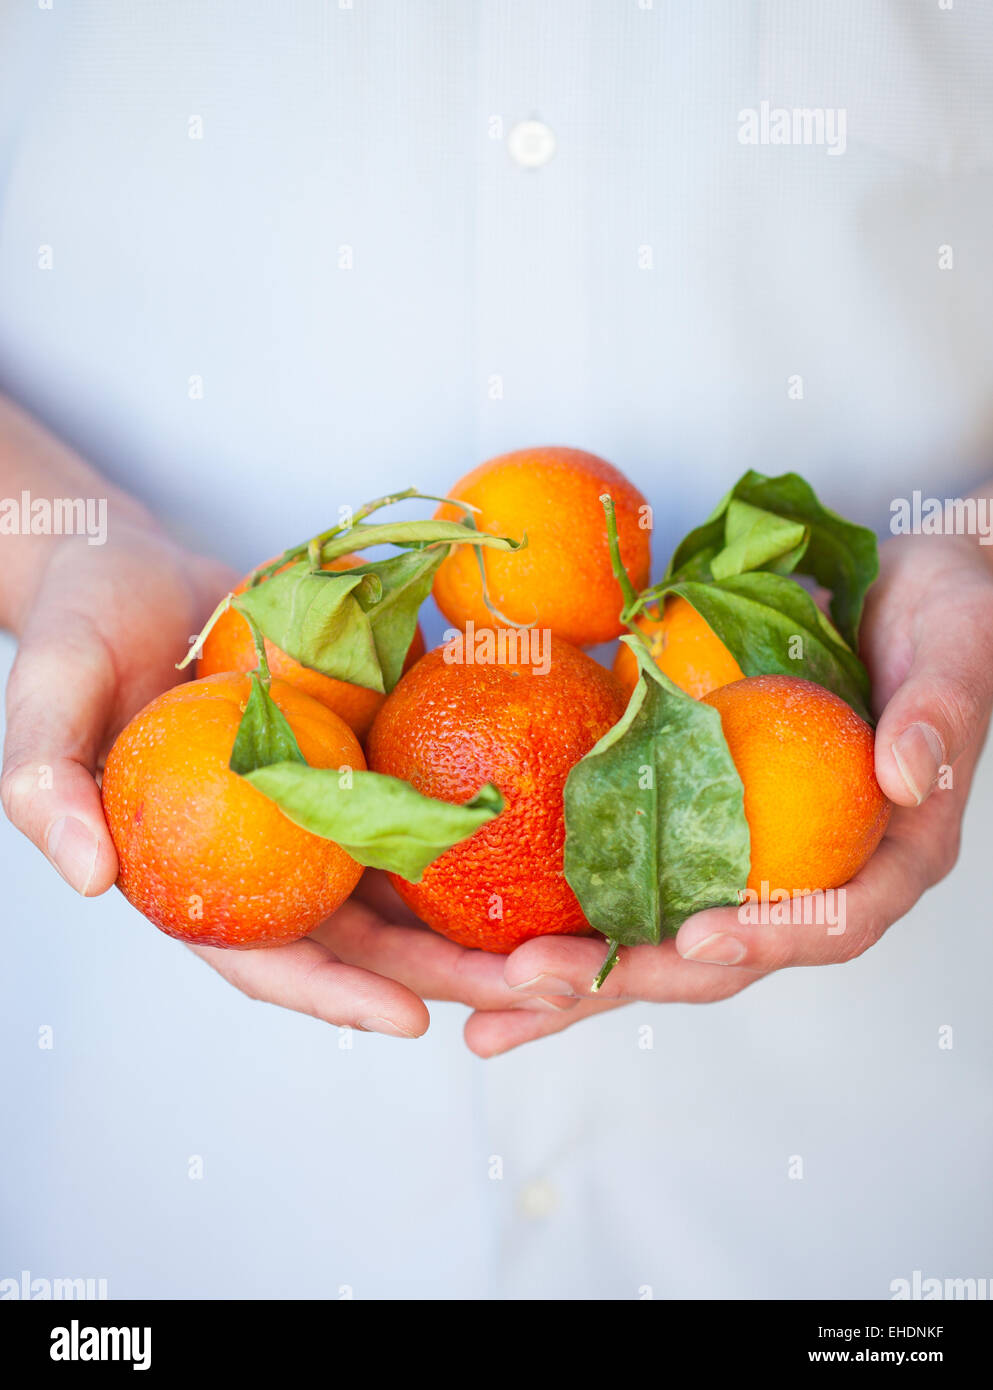 Hands holding blood oranges with leaves - Stock Image